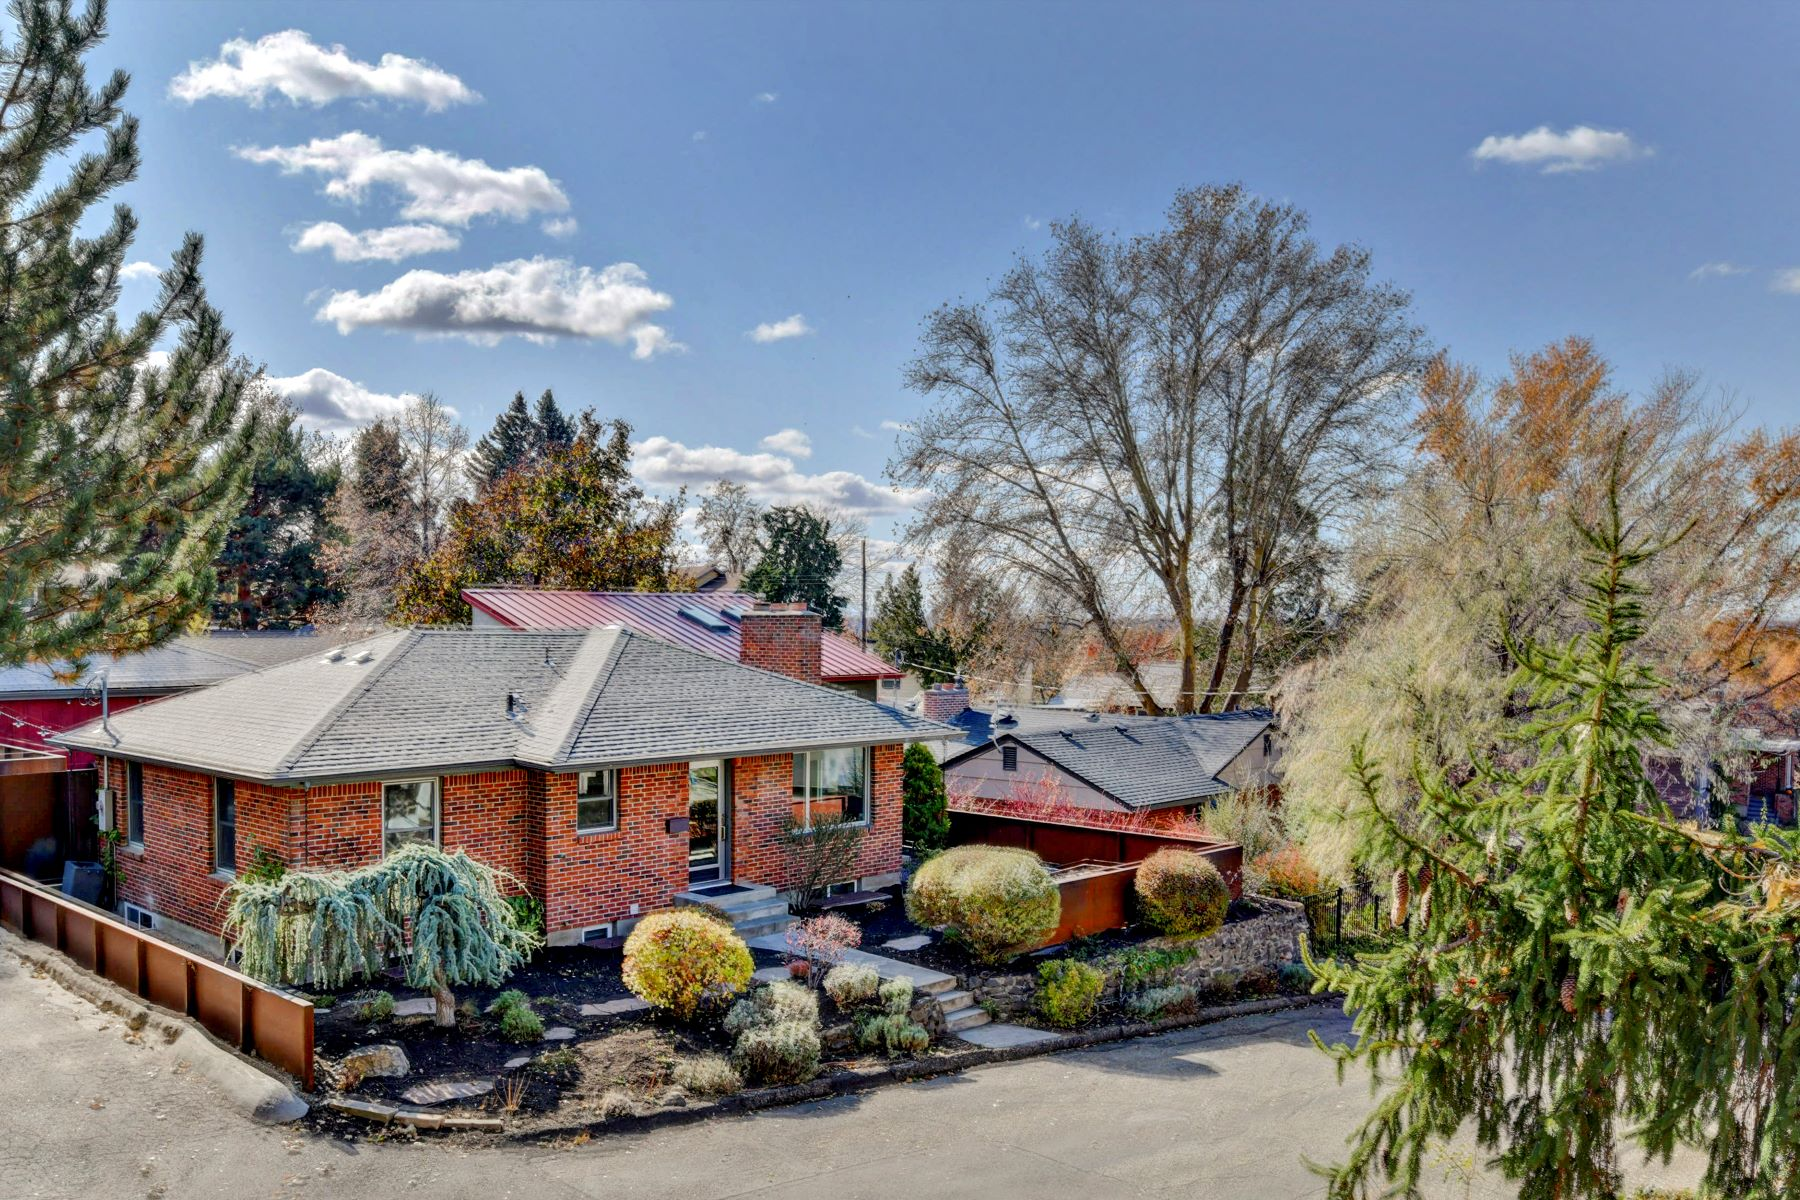 Single Family Homes for Sale at 2515 Heights Drive, Boise 2515 N Heights Dr Boise, Idaho 83702 United States